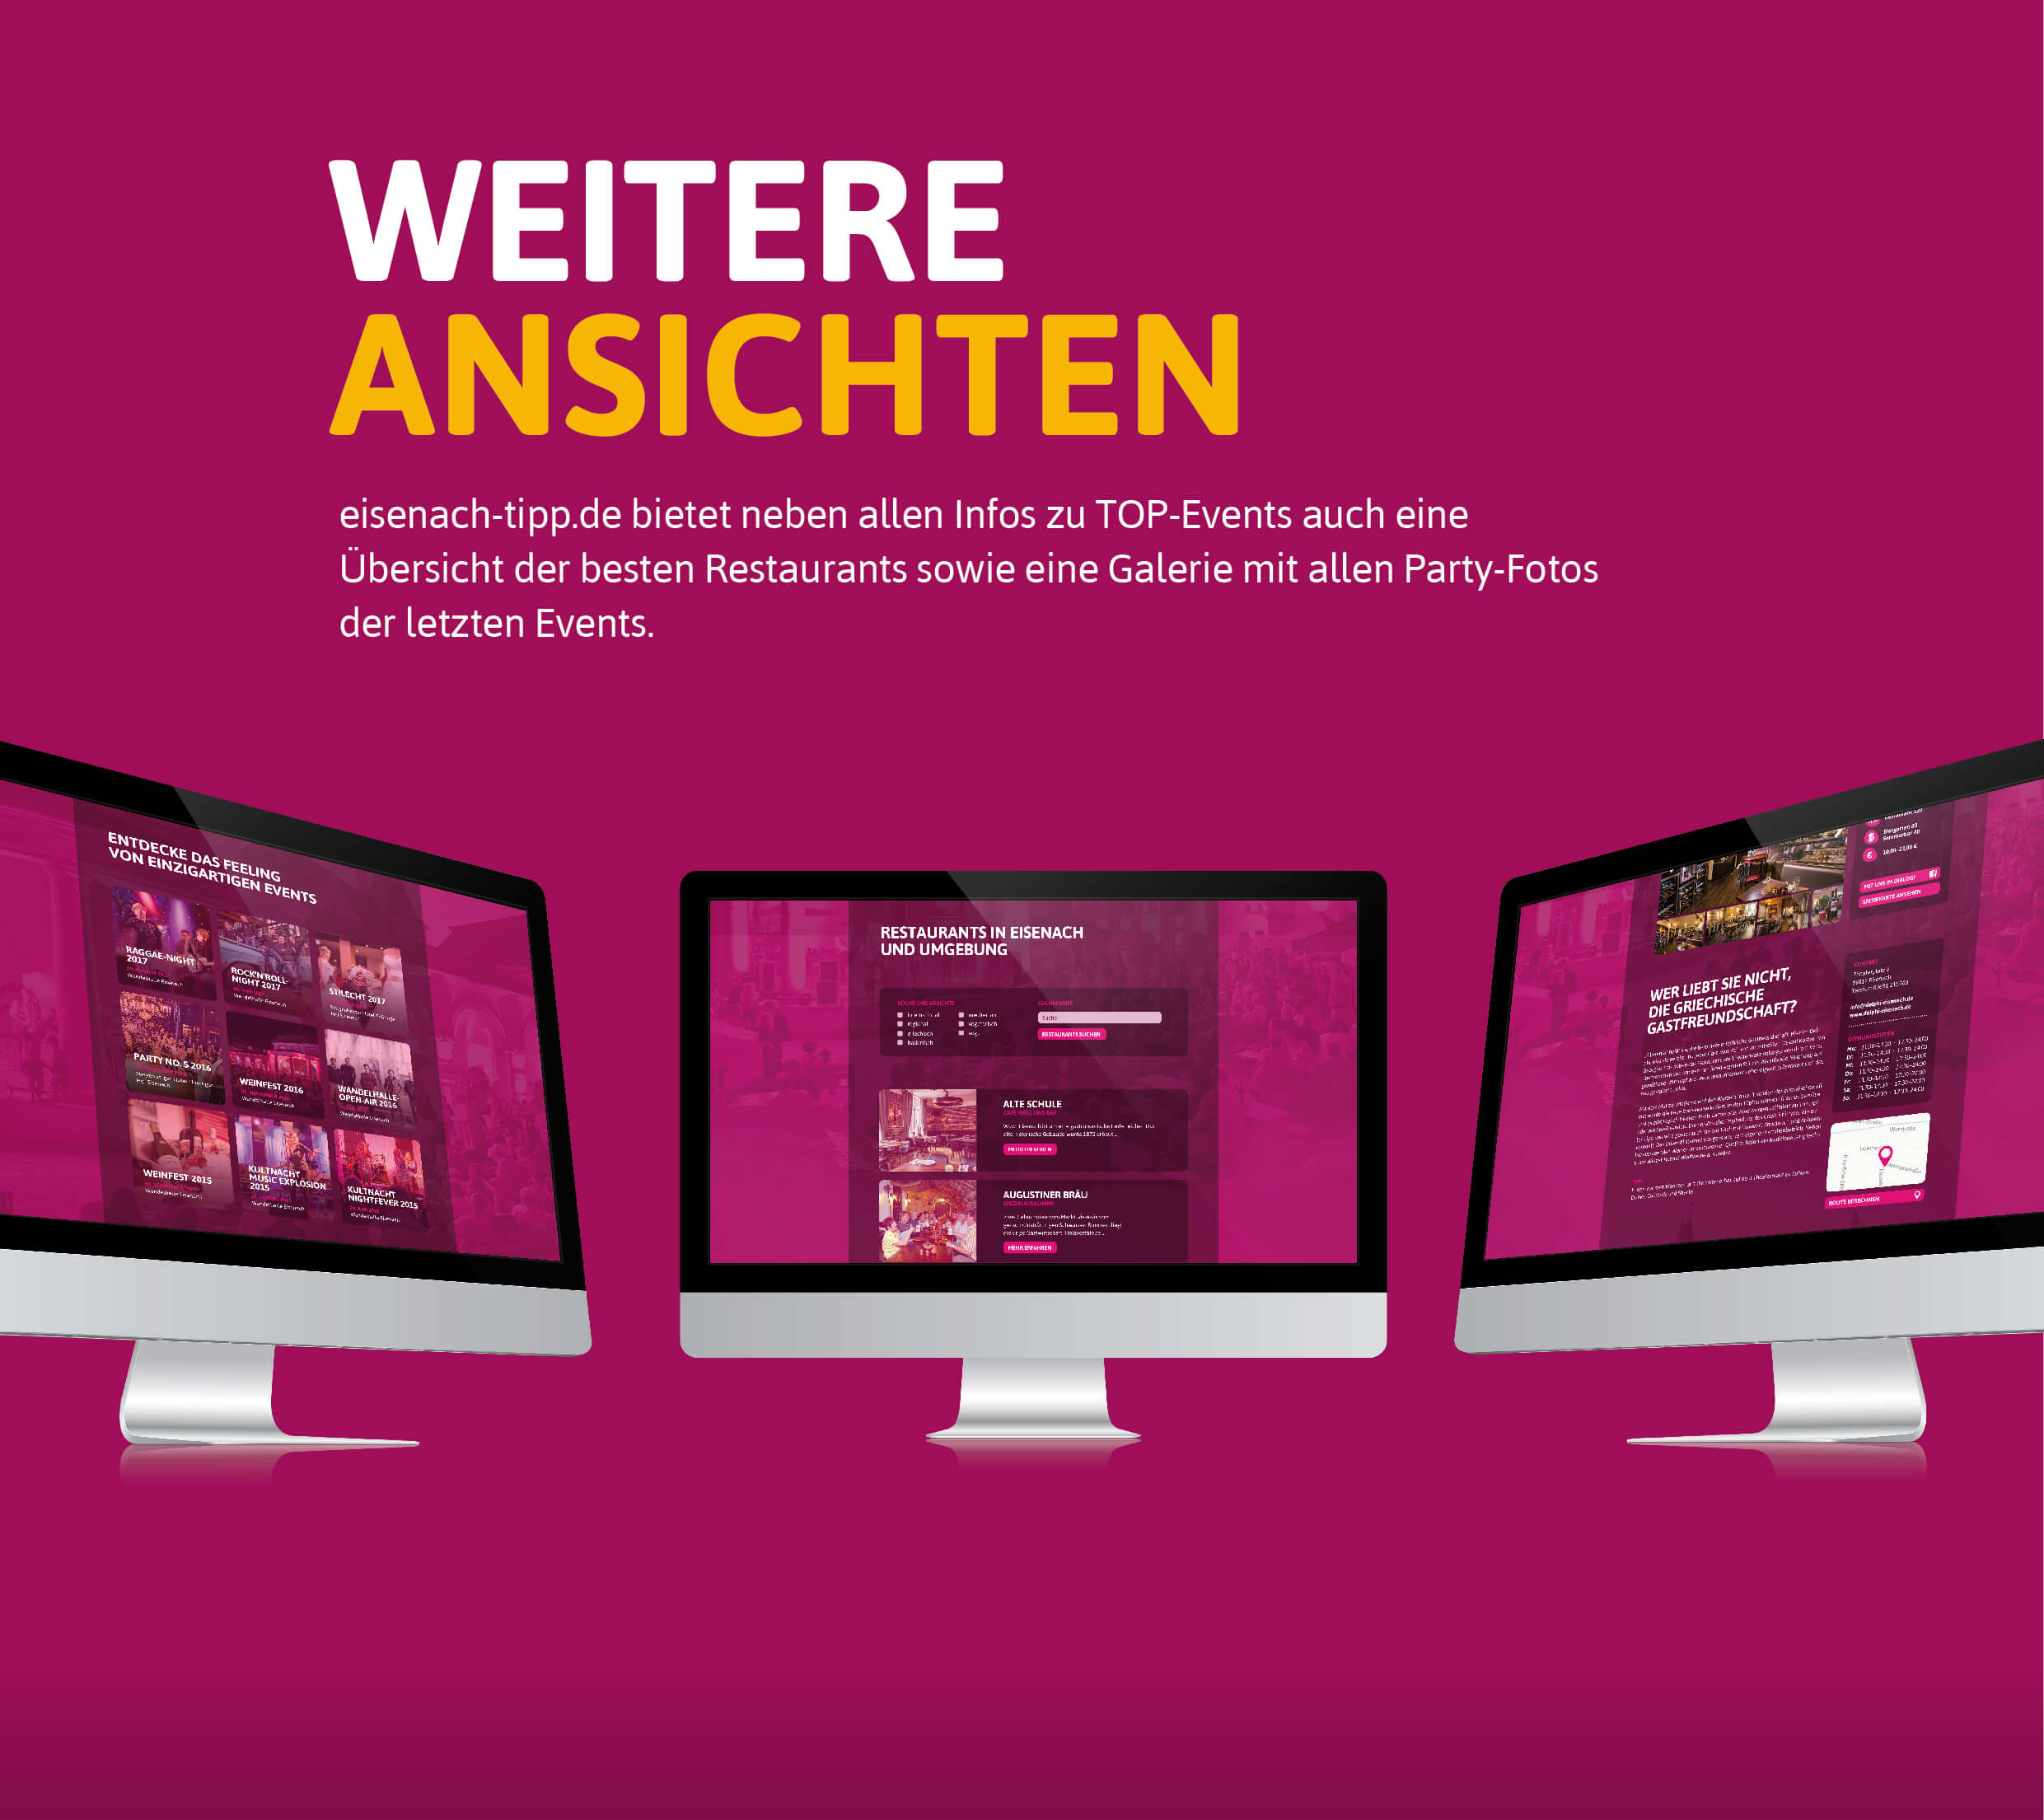 Website eisenach-tipp